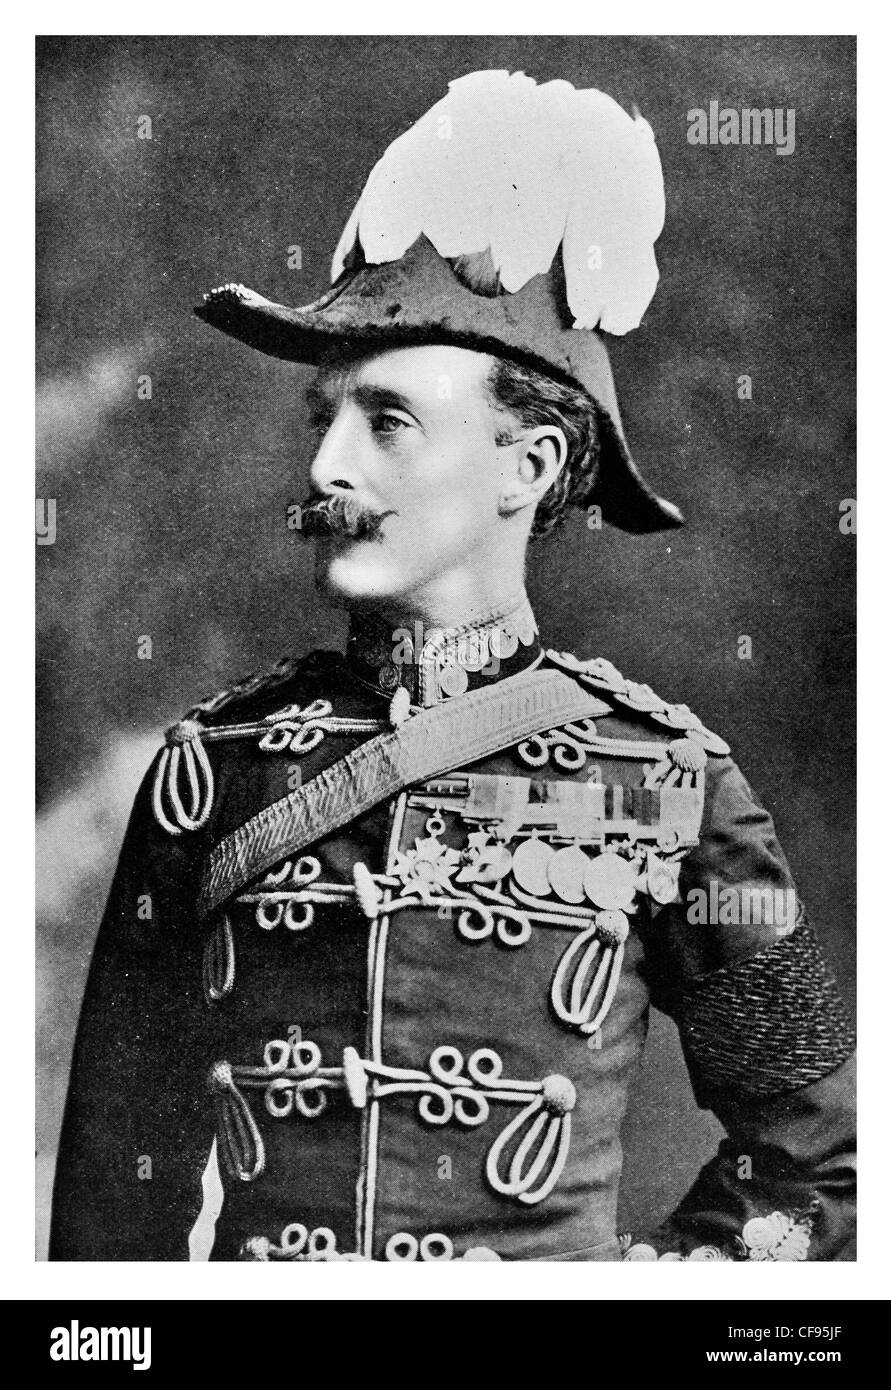 General Sir Ian Standish Monteith Hamilton GCB GCMG DSO TD British Army ill-fated Mediterranean Expeditionary Force - Stock Image